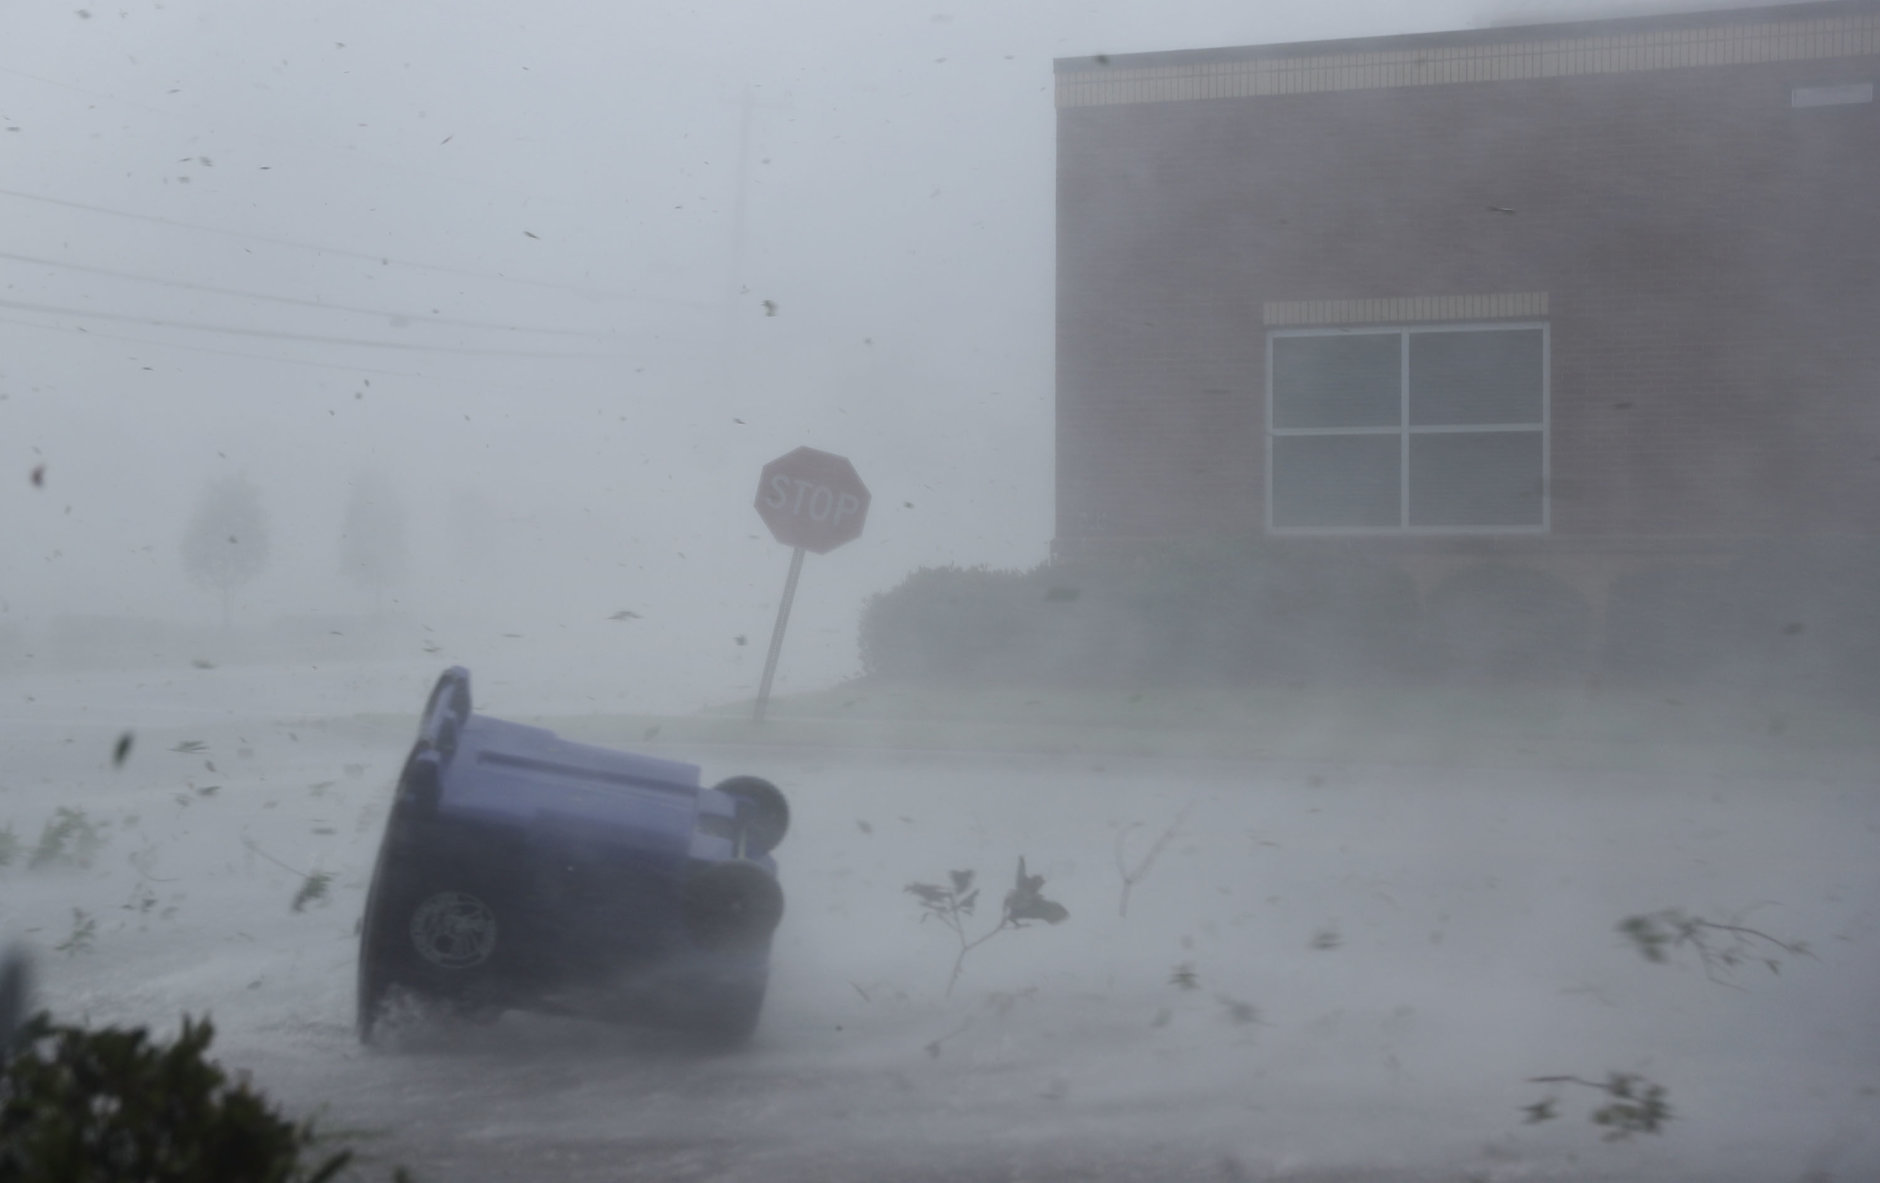 PANAMA CITY, FL - OCTOBER 10: A trash can and debris are blown down a street by Hurricane Michael on October 10, 2018 in Panama City, Florida. The hurricane made landfall on the Florida Panhandle as a category 4 storm.  (Photo by Joe Raedle/Getty Images)